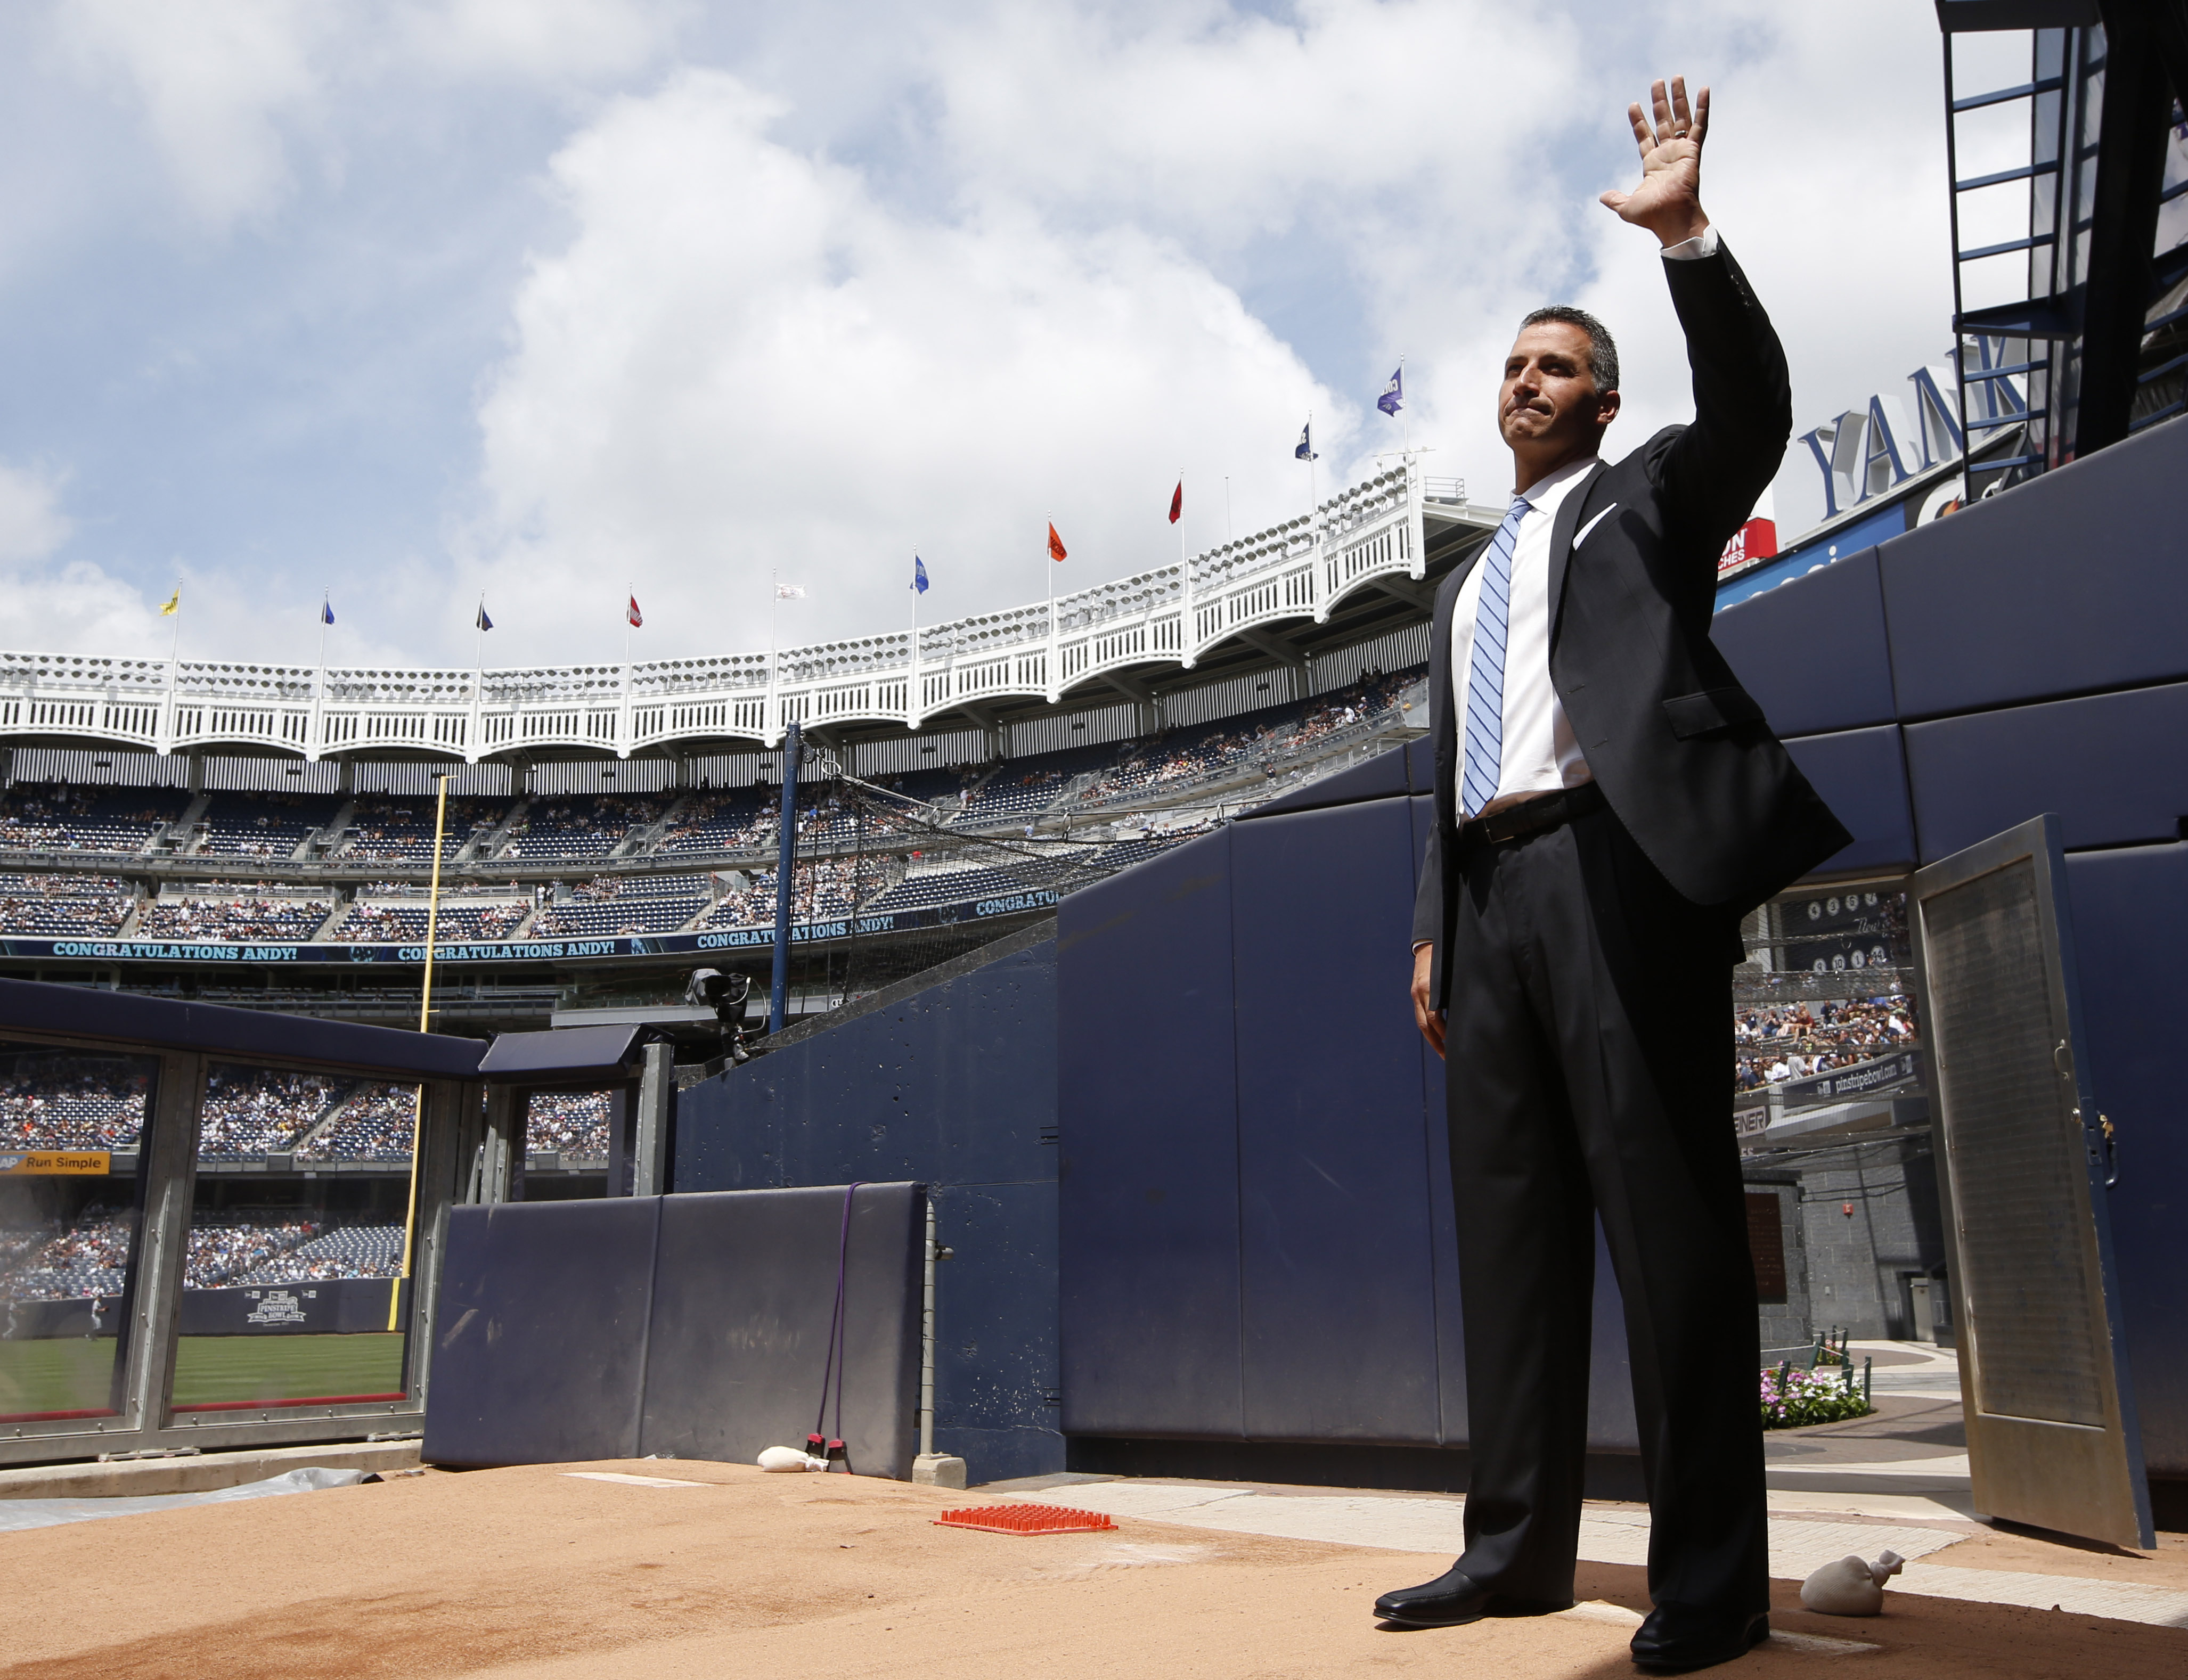 Retired New York Yankees pitcher Andy Pettitte waves to the crowd from the bullpen as he is introduced in Yankee Stadium's Monument Park during a pregame ceremony retiring his number before a baseball game in New York, Sunday, Aug. 23, 2015.  The Yankees